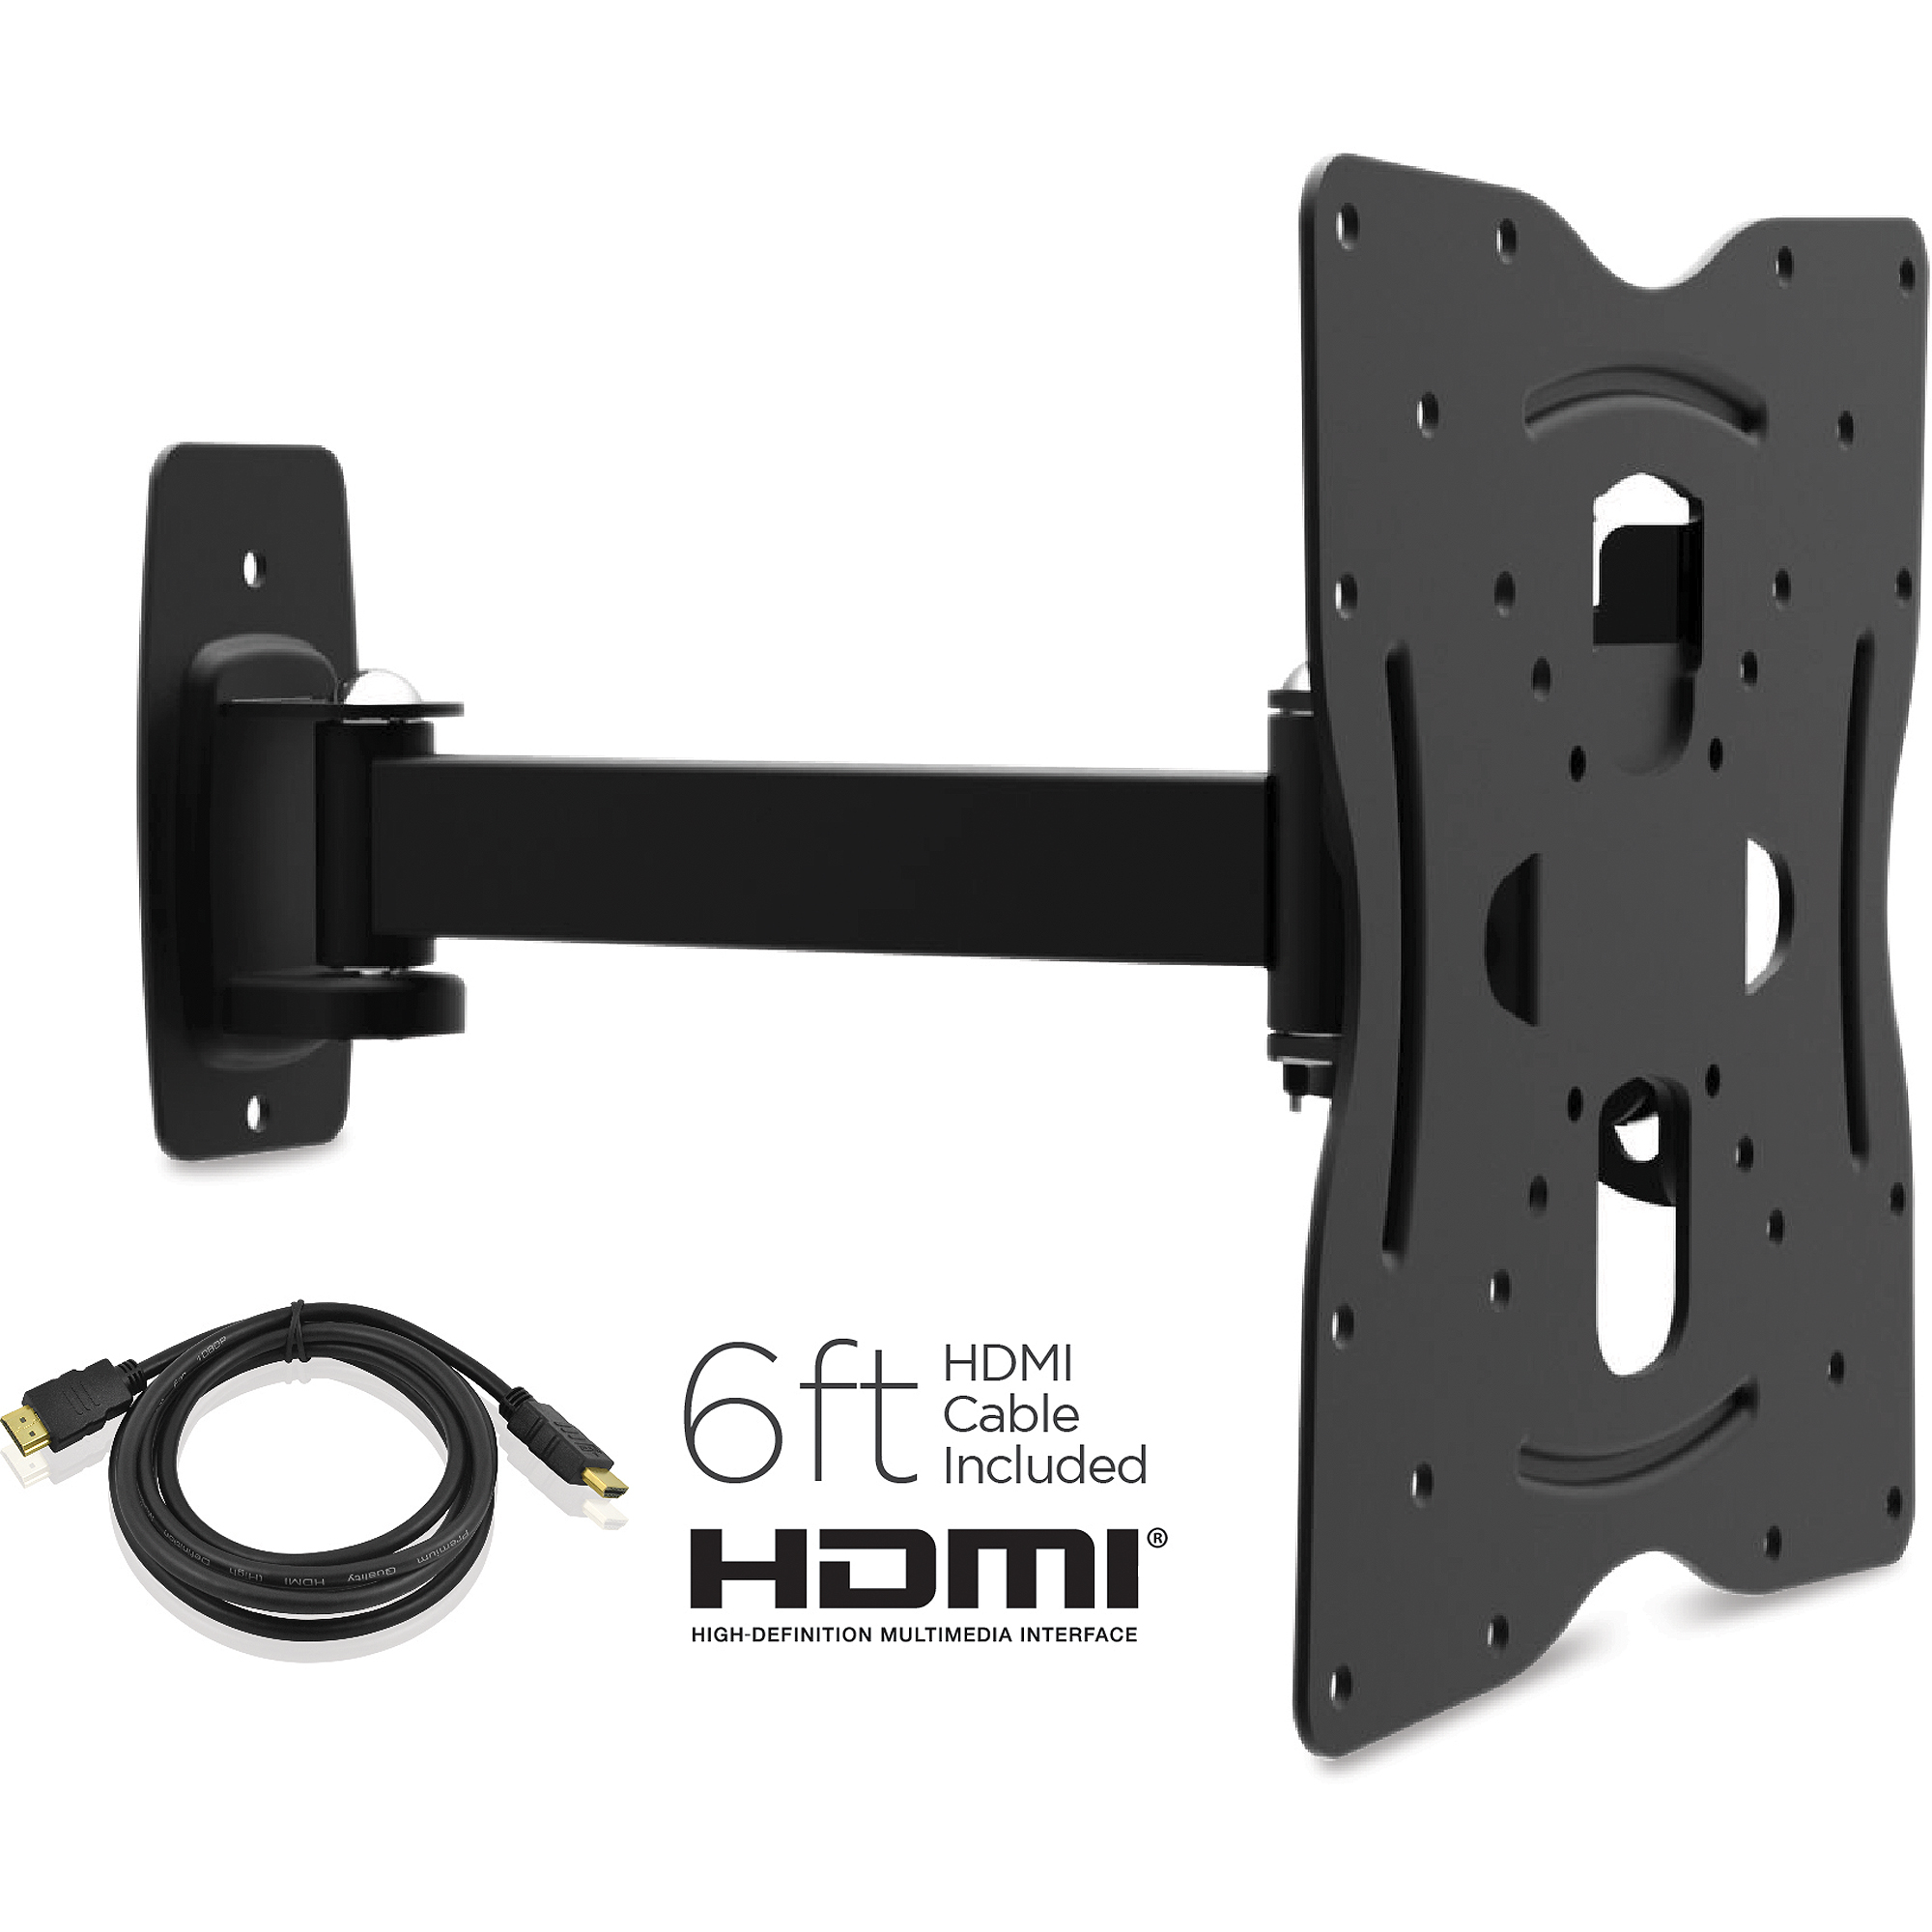 Fleximounts Full Motion Articulating Tv Wall Mount Bracket Tilt Swivel Fit For 32 60 Flat Screen